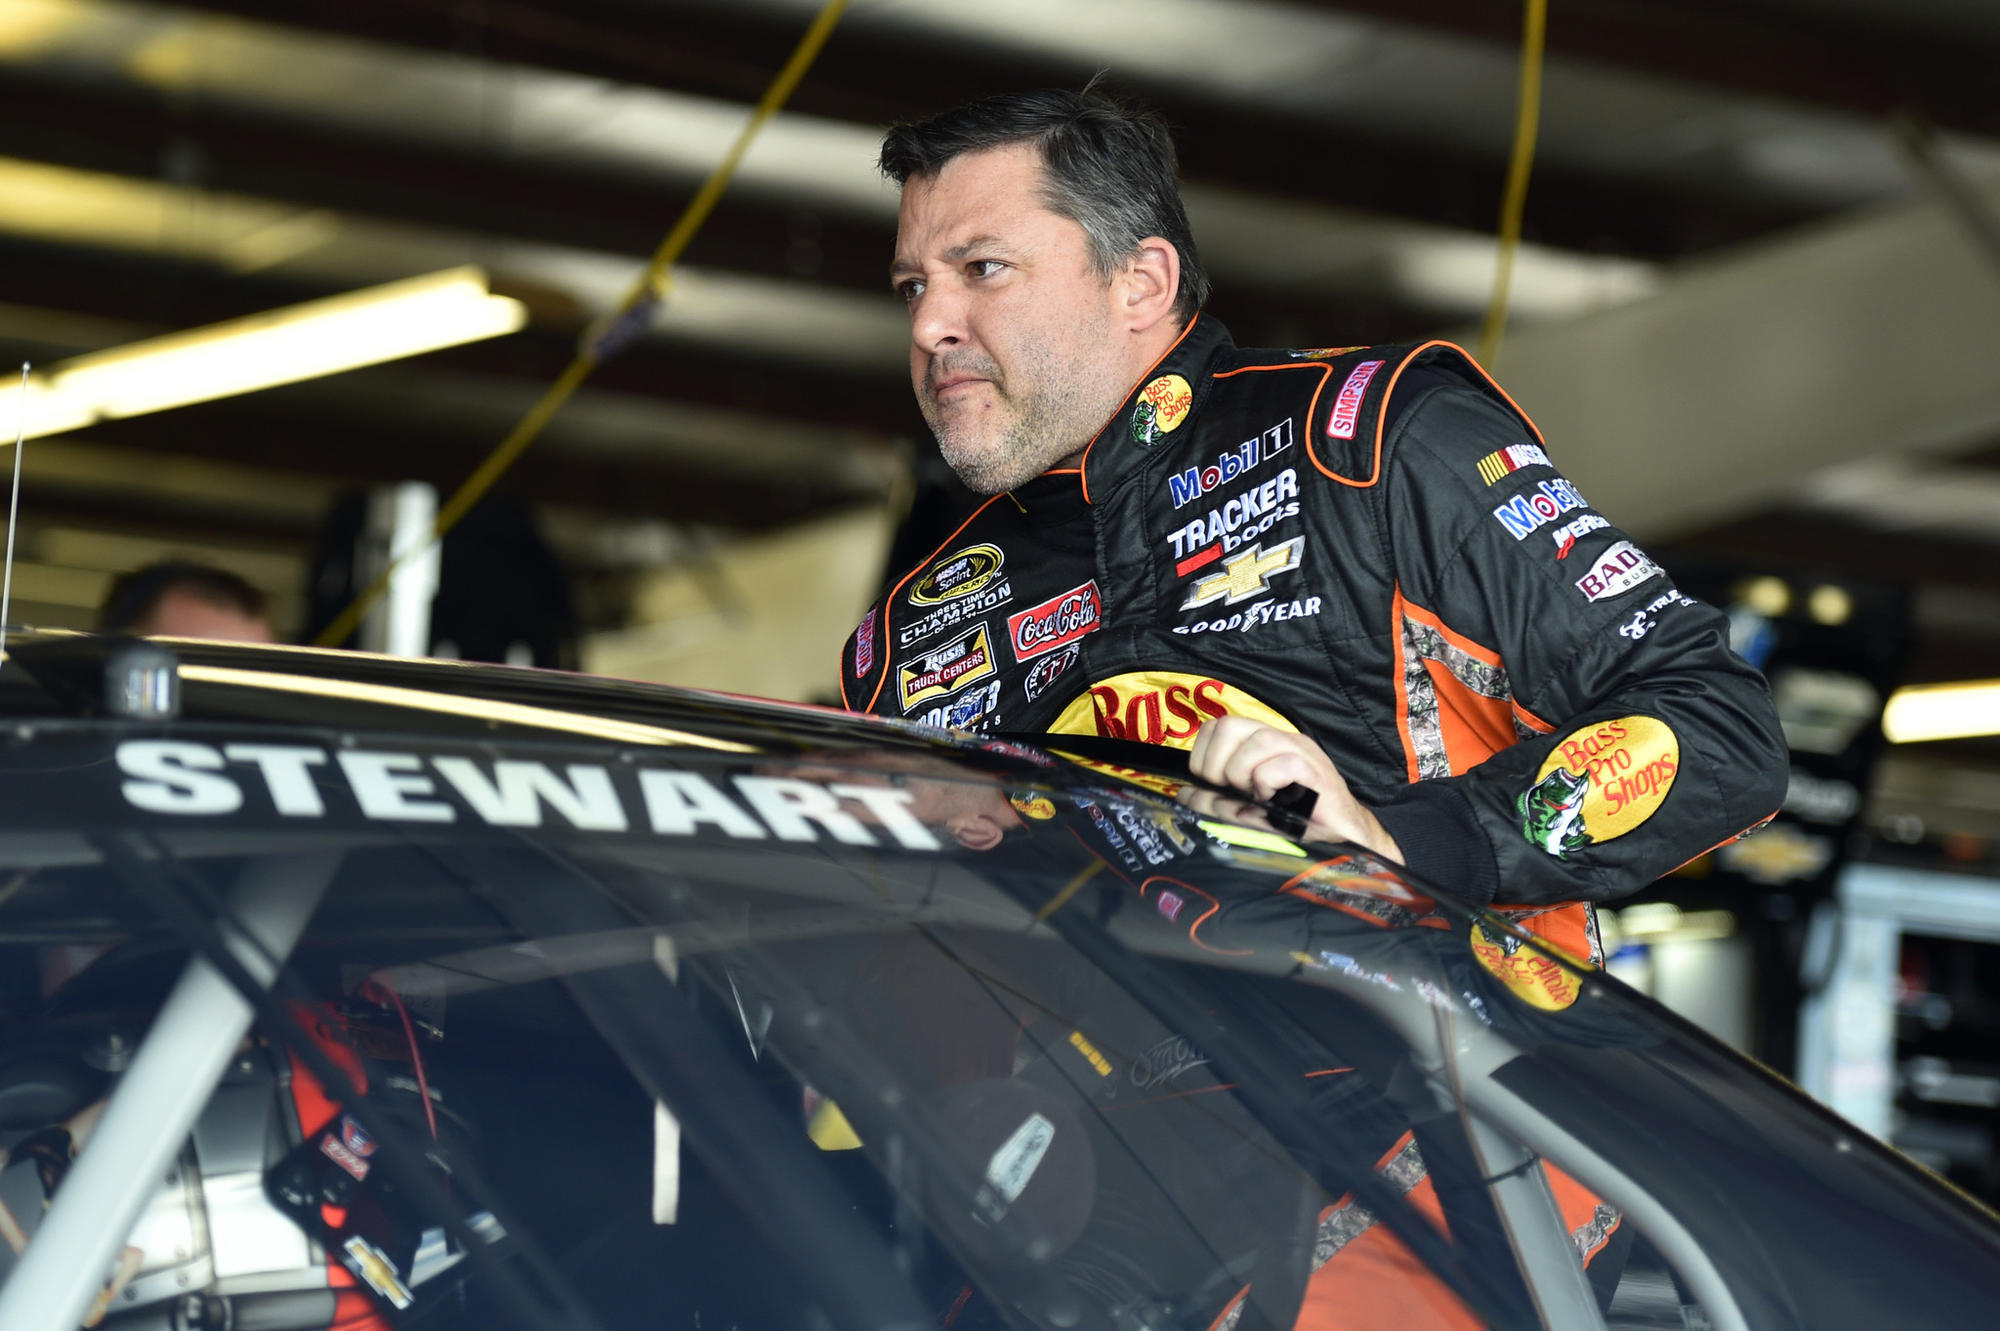 famous nascar drivers from virginia